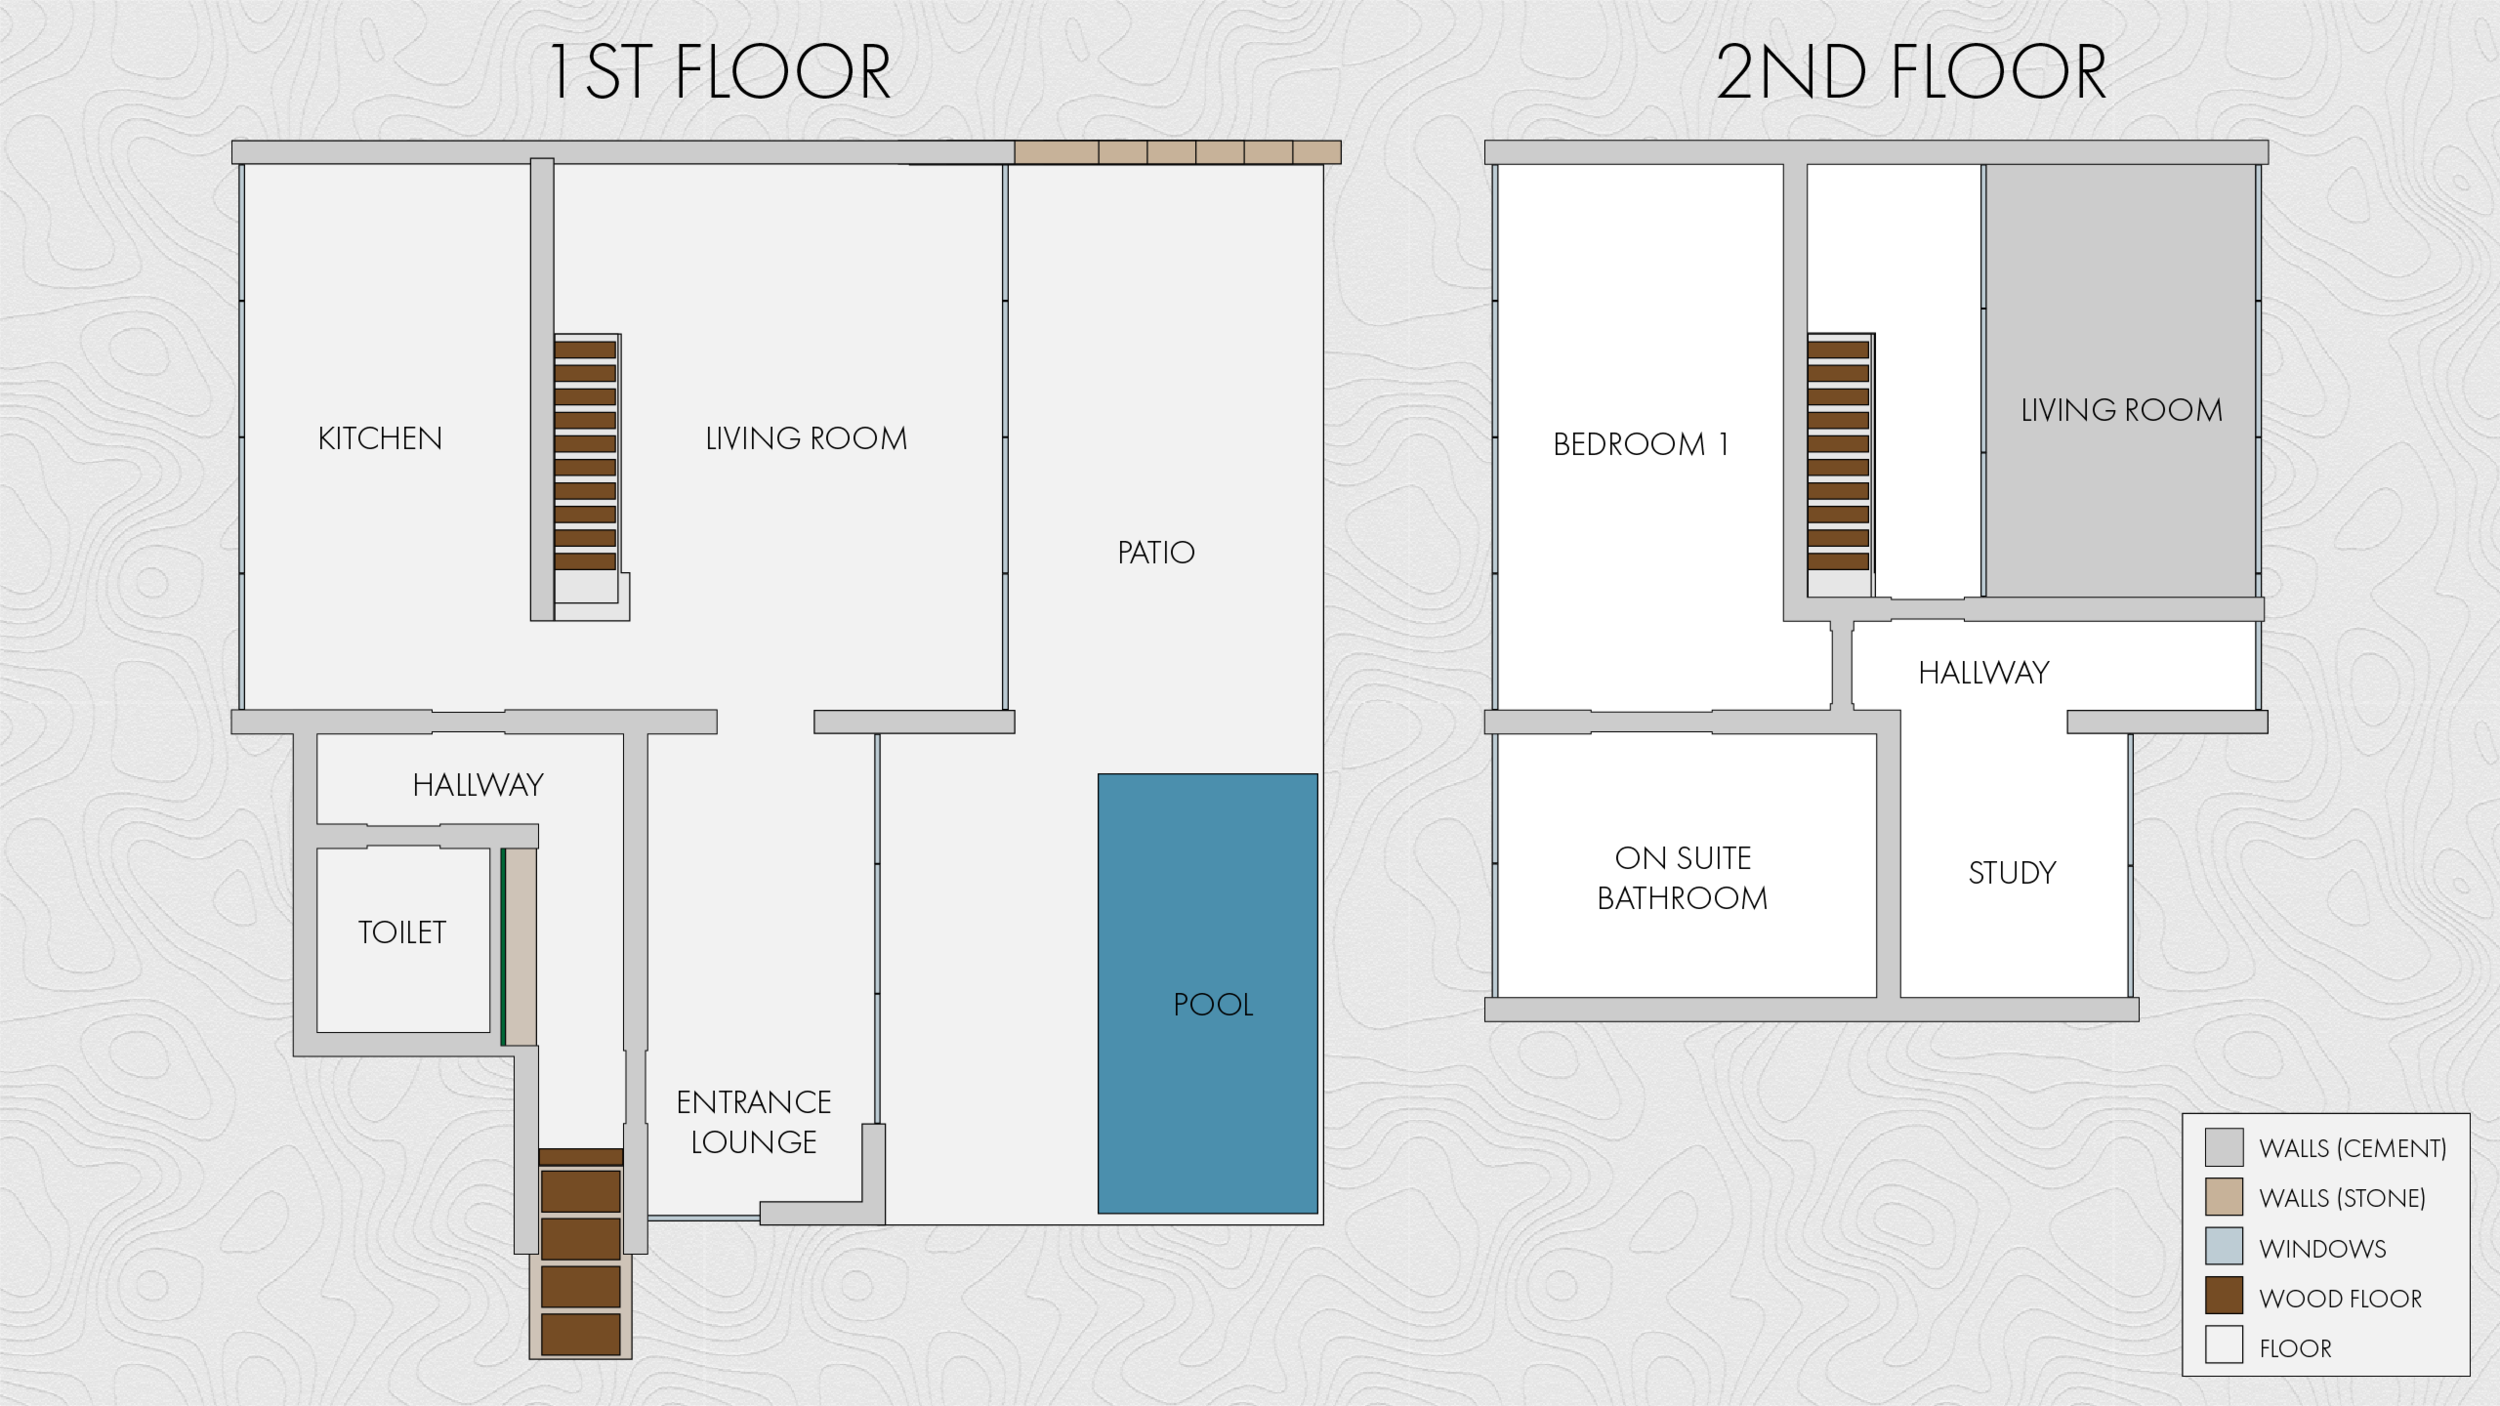 Floor plan of how I want the interior layout to be.